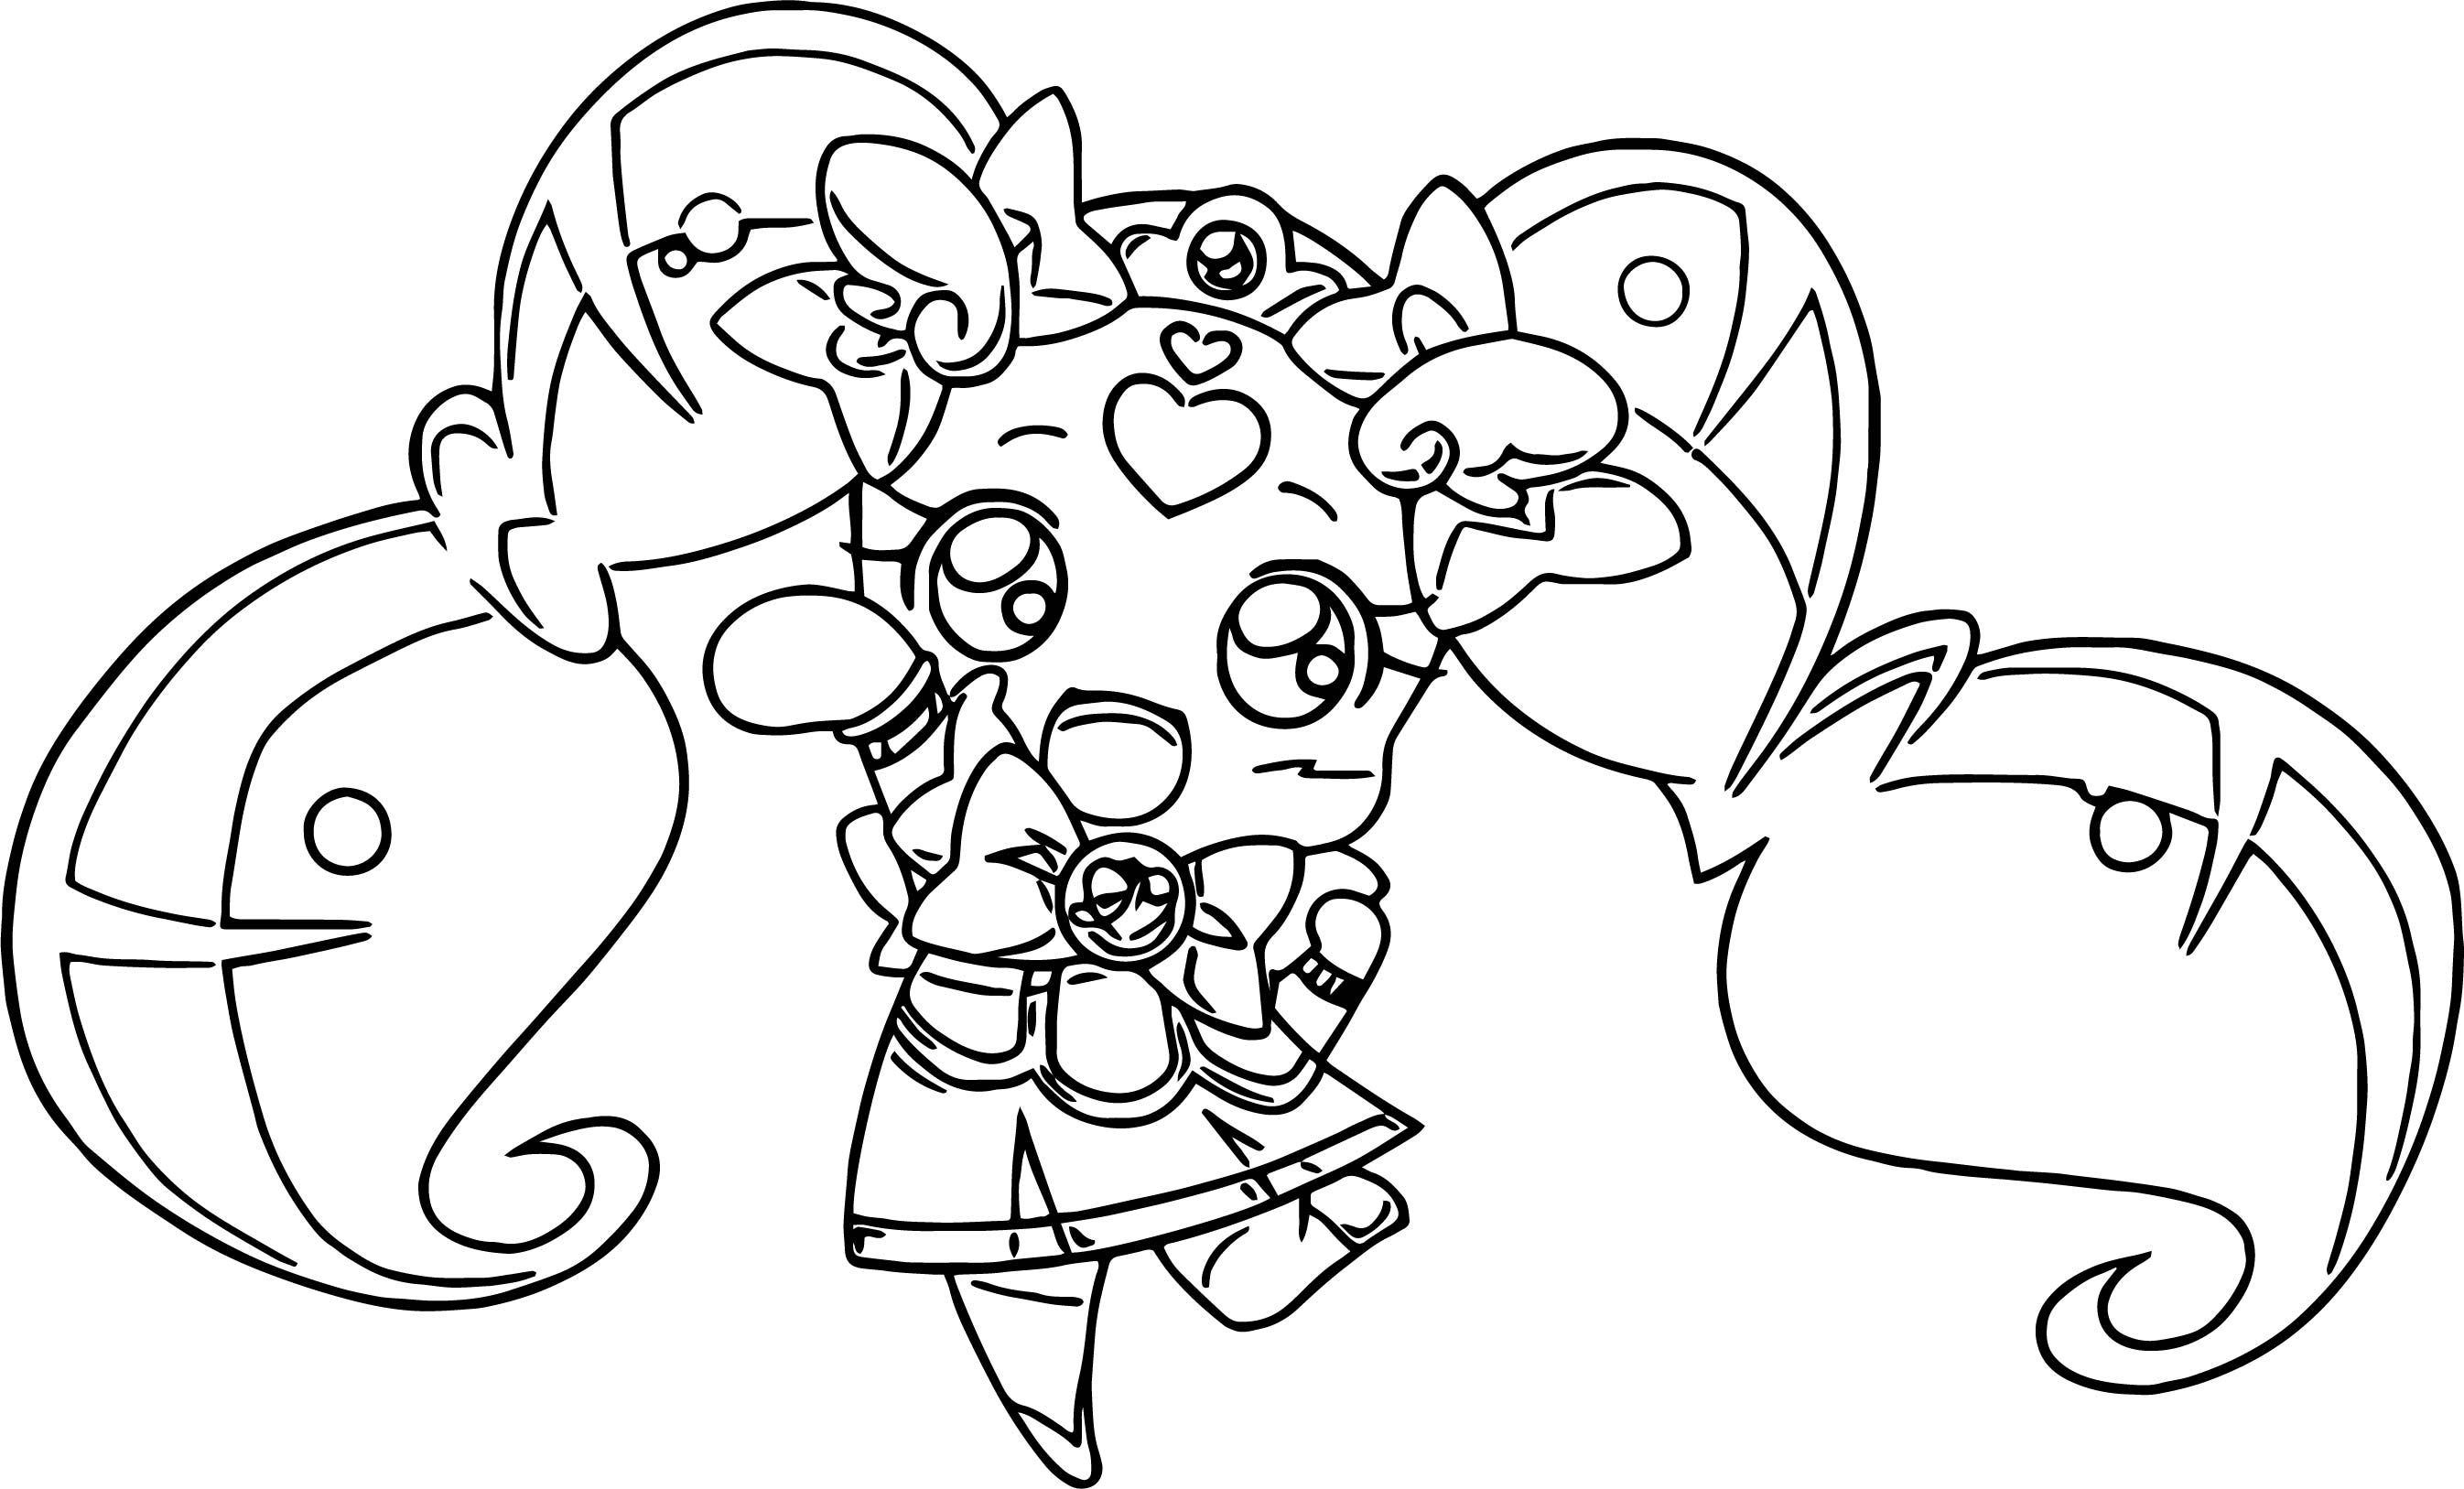 Glitter Force Toy Girl Coloring Page Wecoloringpage